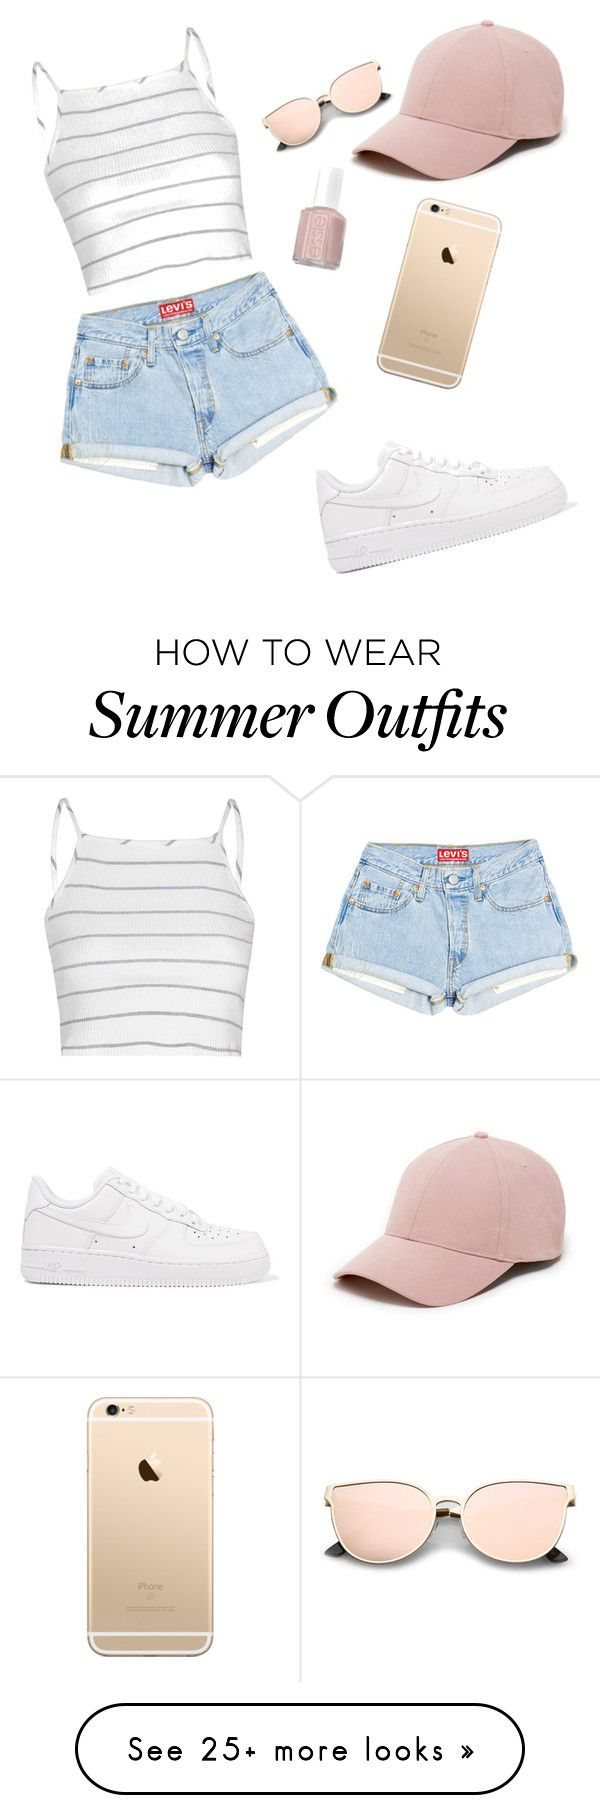 Simple summer outfit! by hannahalund on Polyvore featuring Glamorous, NIKE, Sole Society and Essie